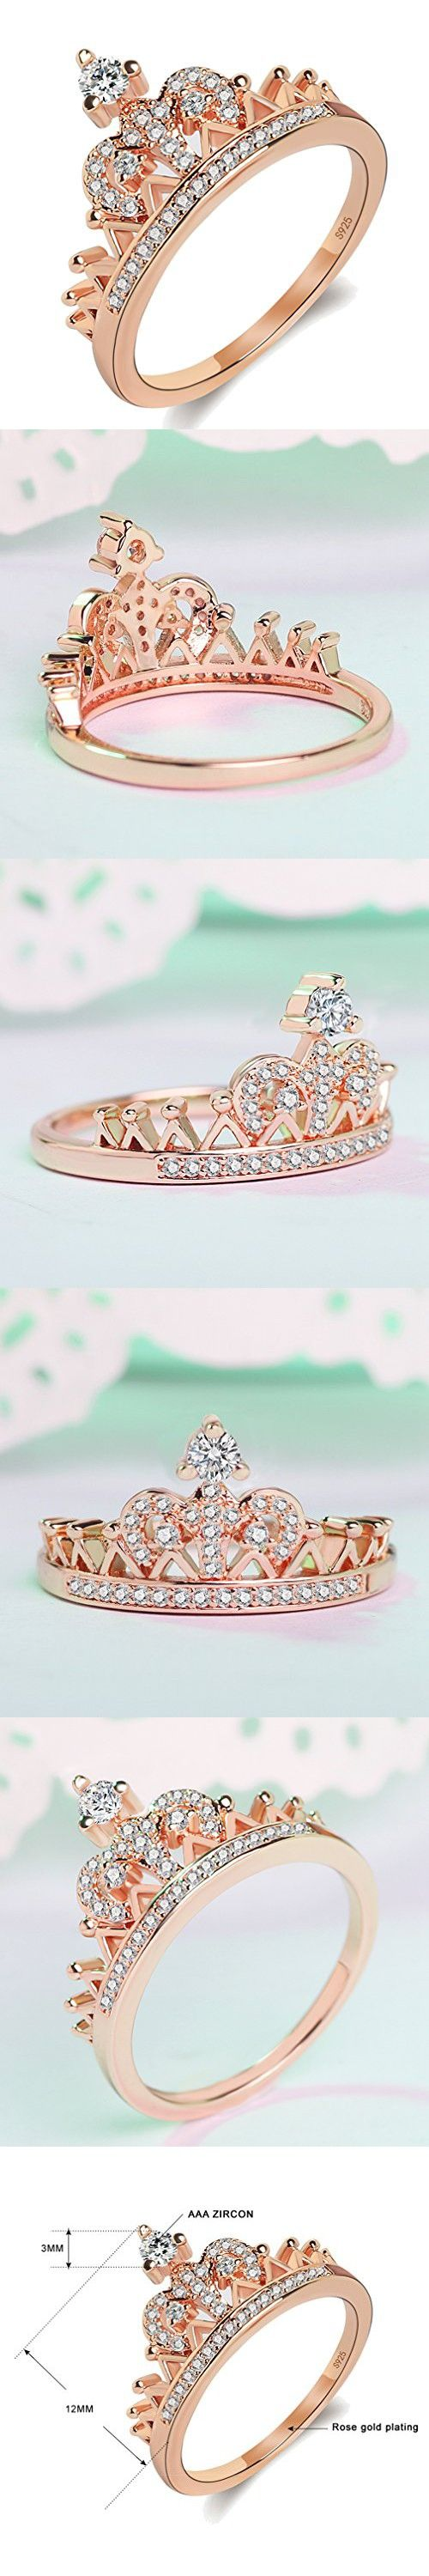 Women's Crown Tiara Rings Exquisite 18K Rose Gold Plated Princess Tiny CZ Diamond Accented Promise Rings for Her Size 10